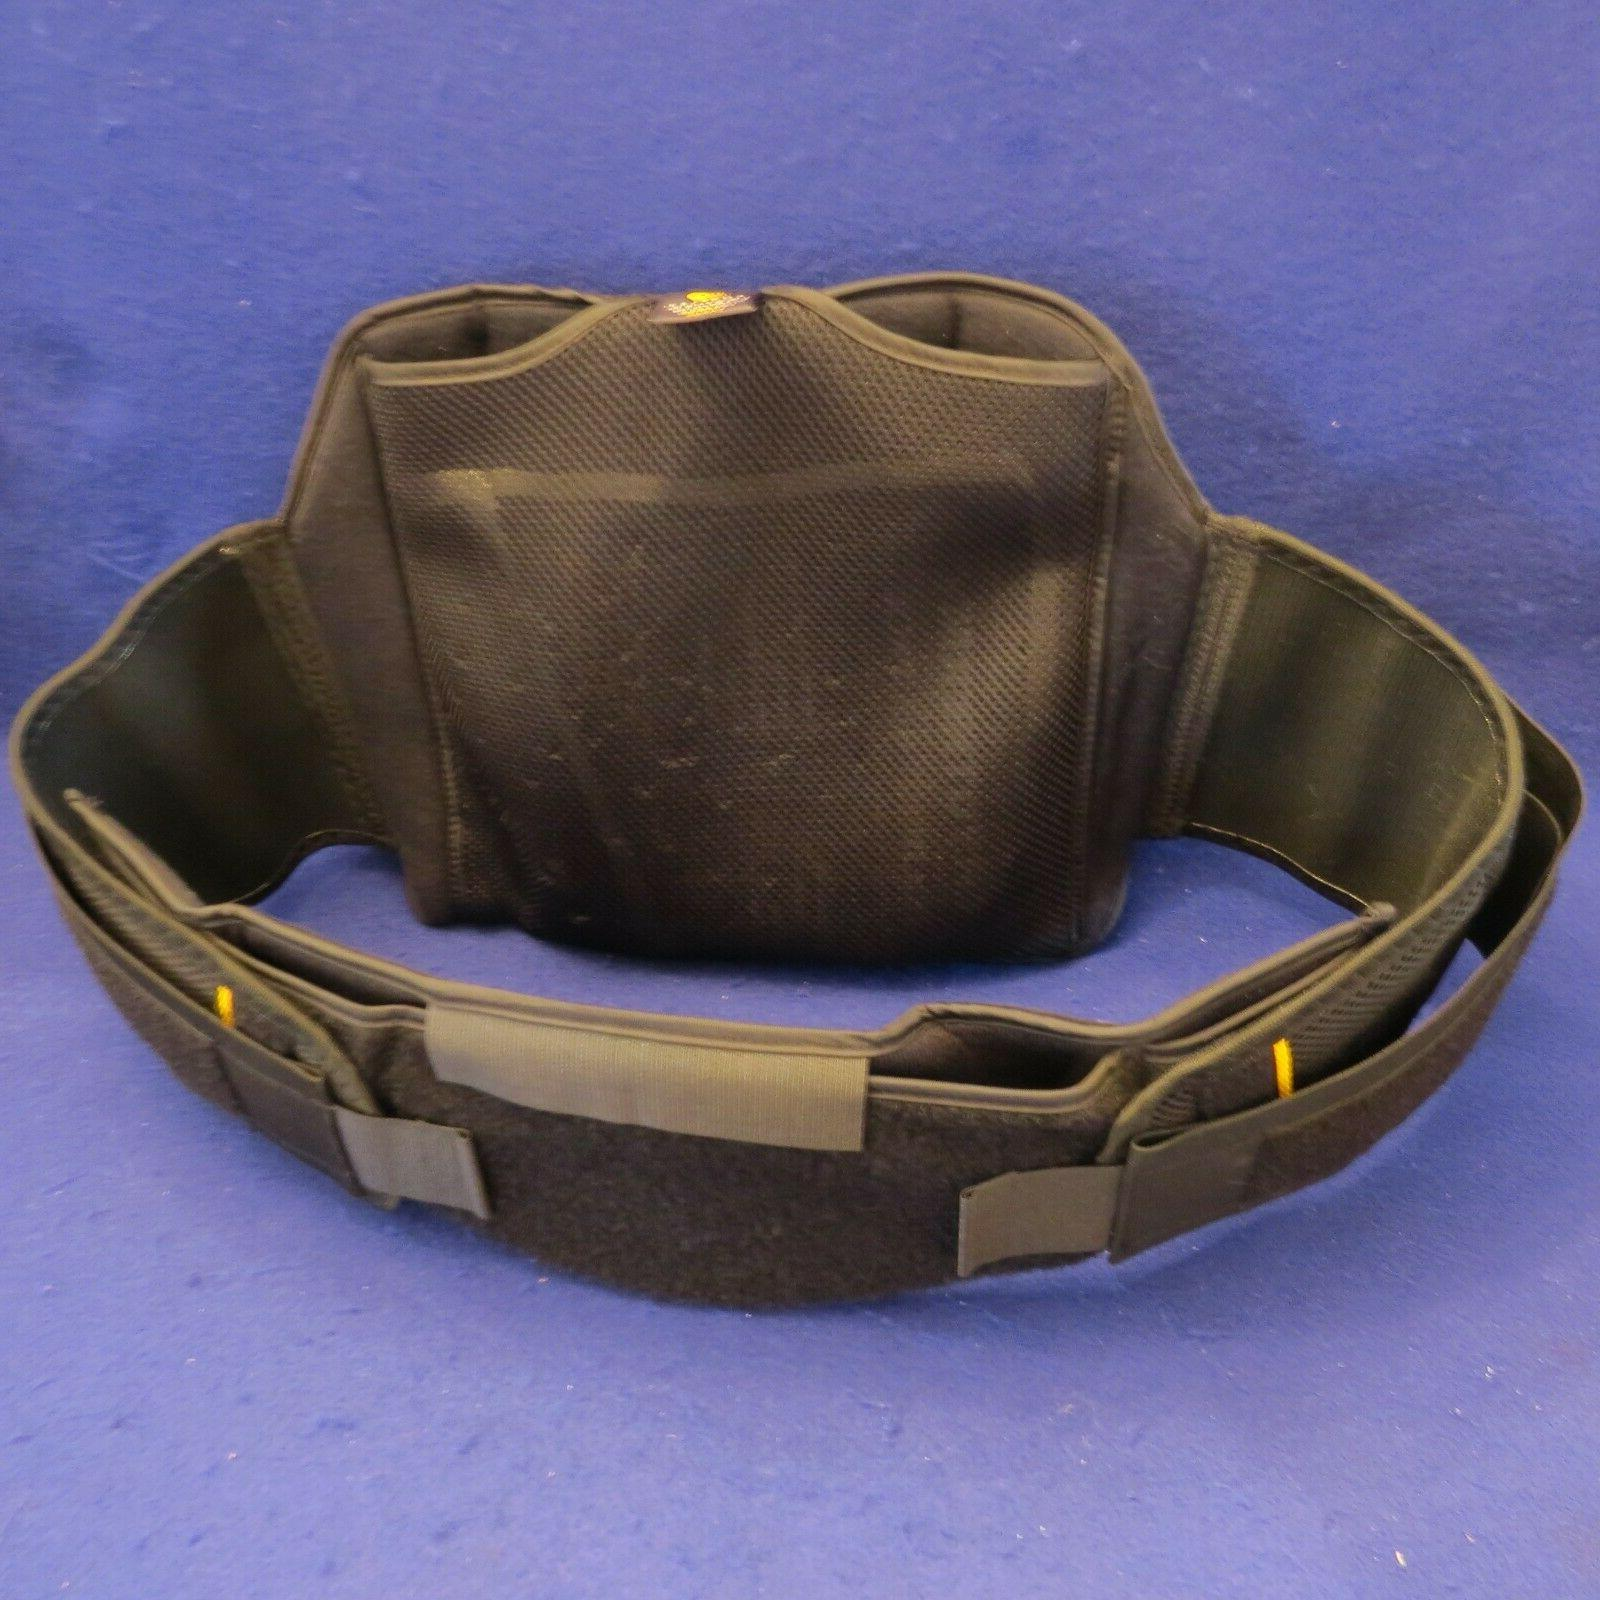 NEW Corflex Support Brace with / Cold Pack